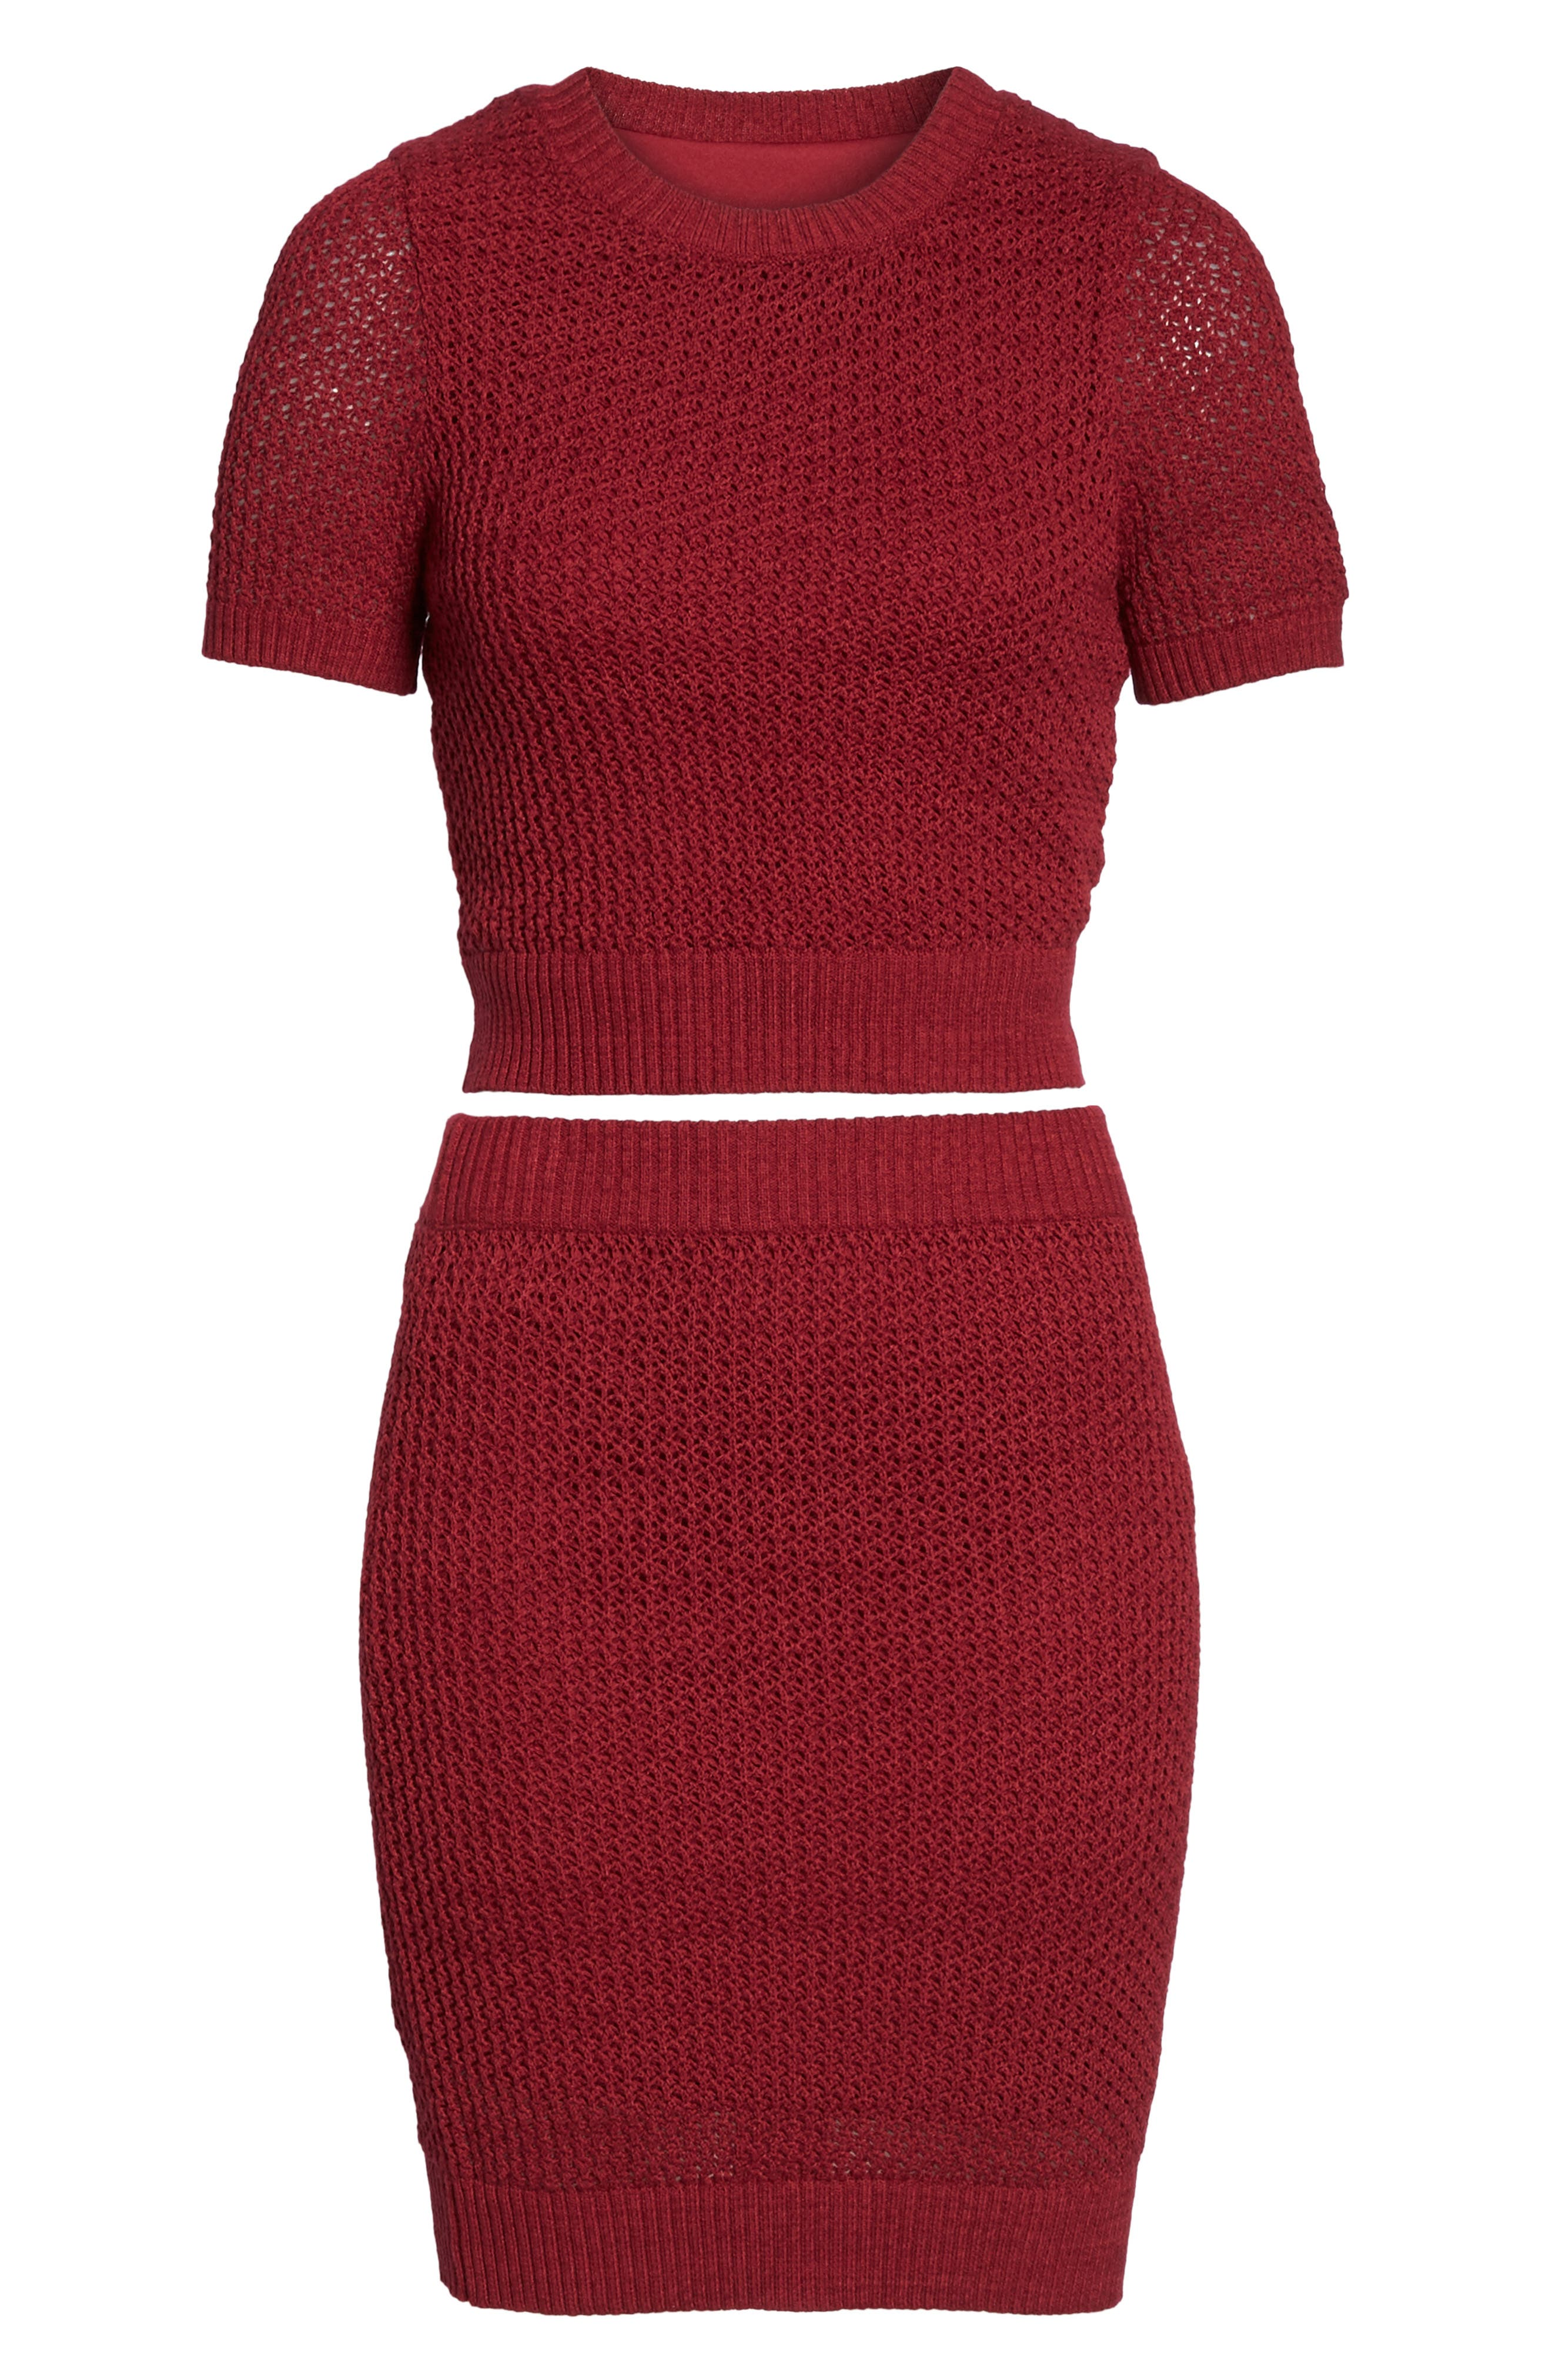 Two-Piece Sweater Dress,                             Alternate thumbnail 6, color,